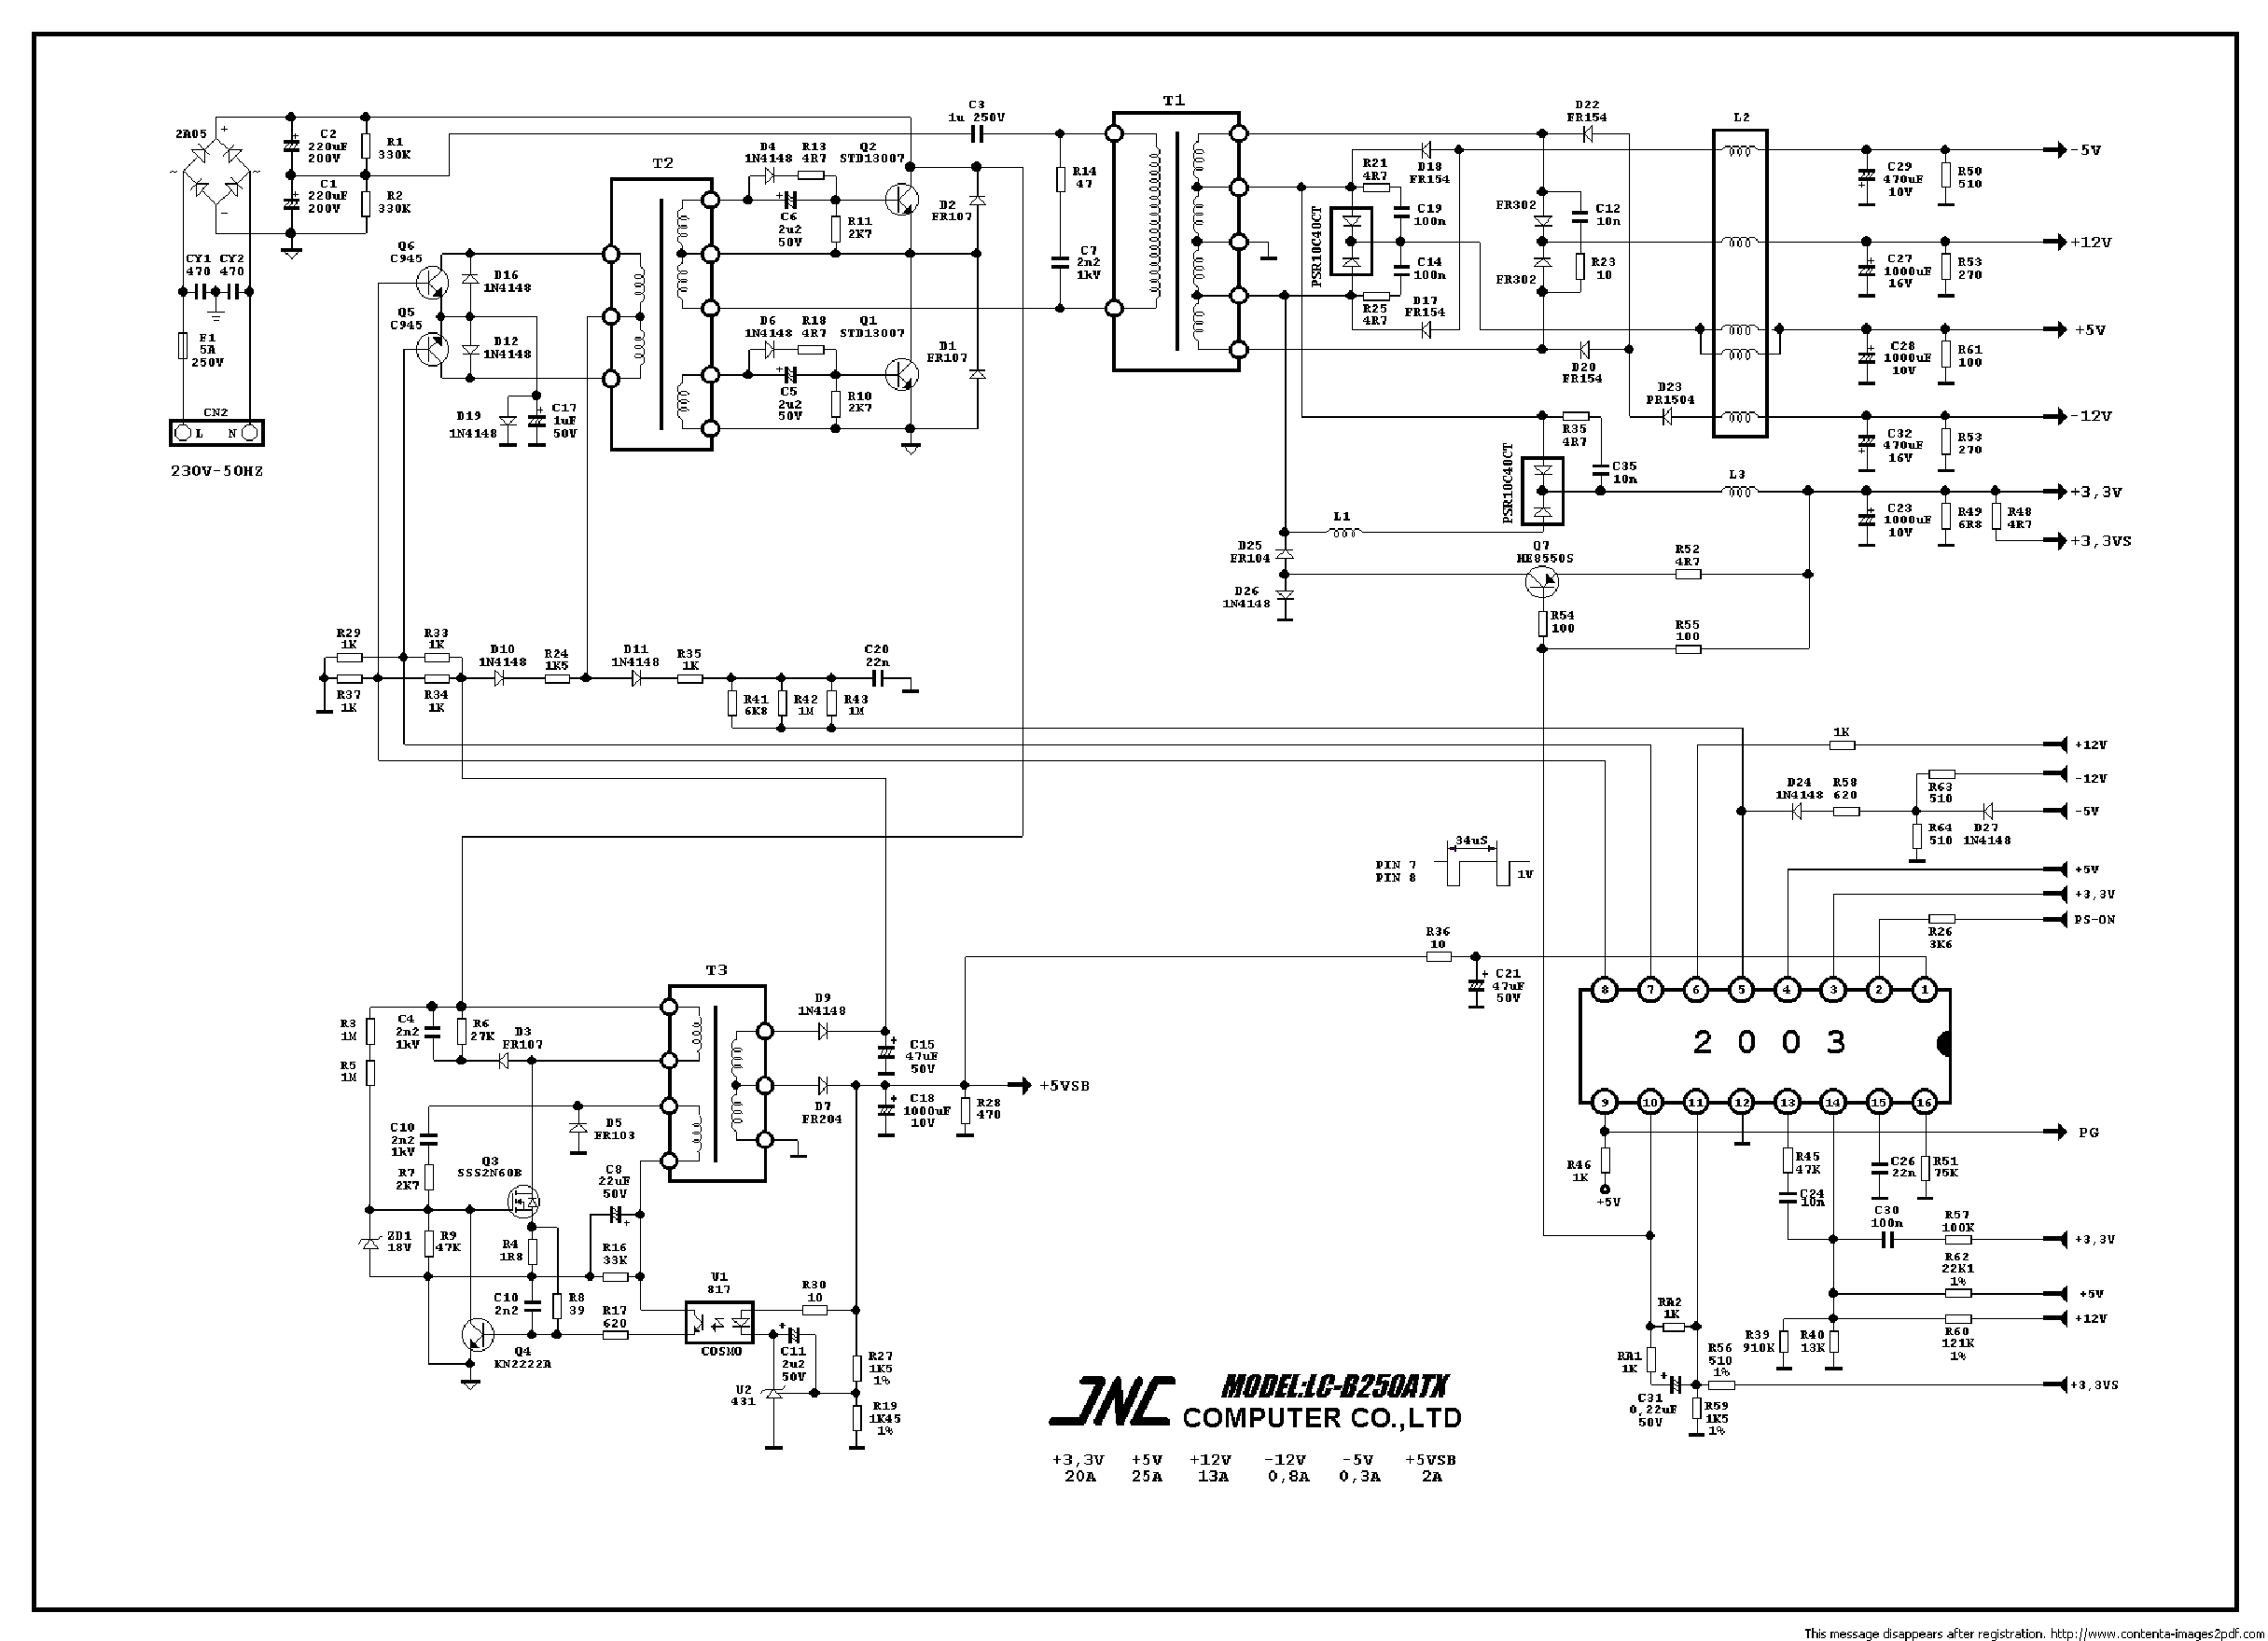 ATX Power Supply Schematic http://elektrotanya.com/jnc_lc-b250atx_pc_power_supply_sch.pdf/download.html